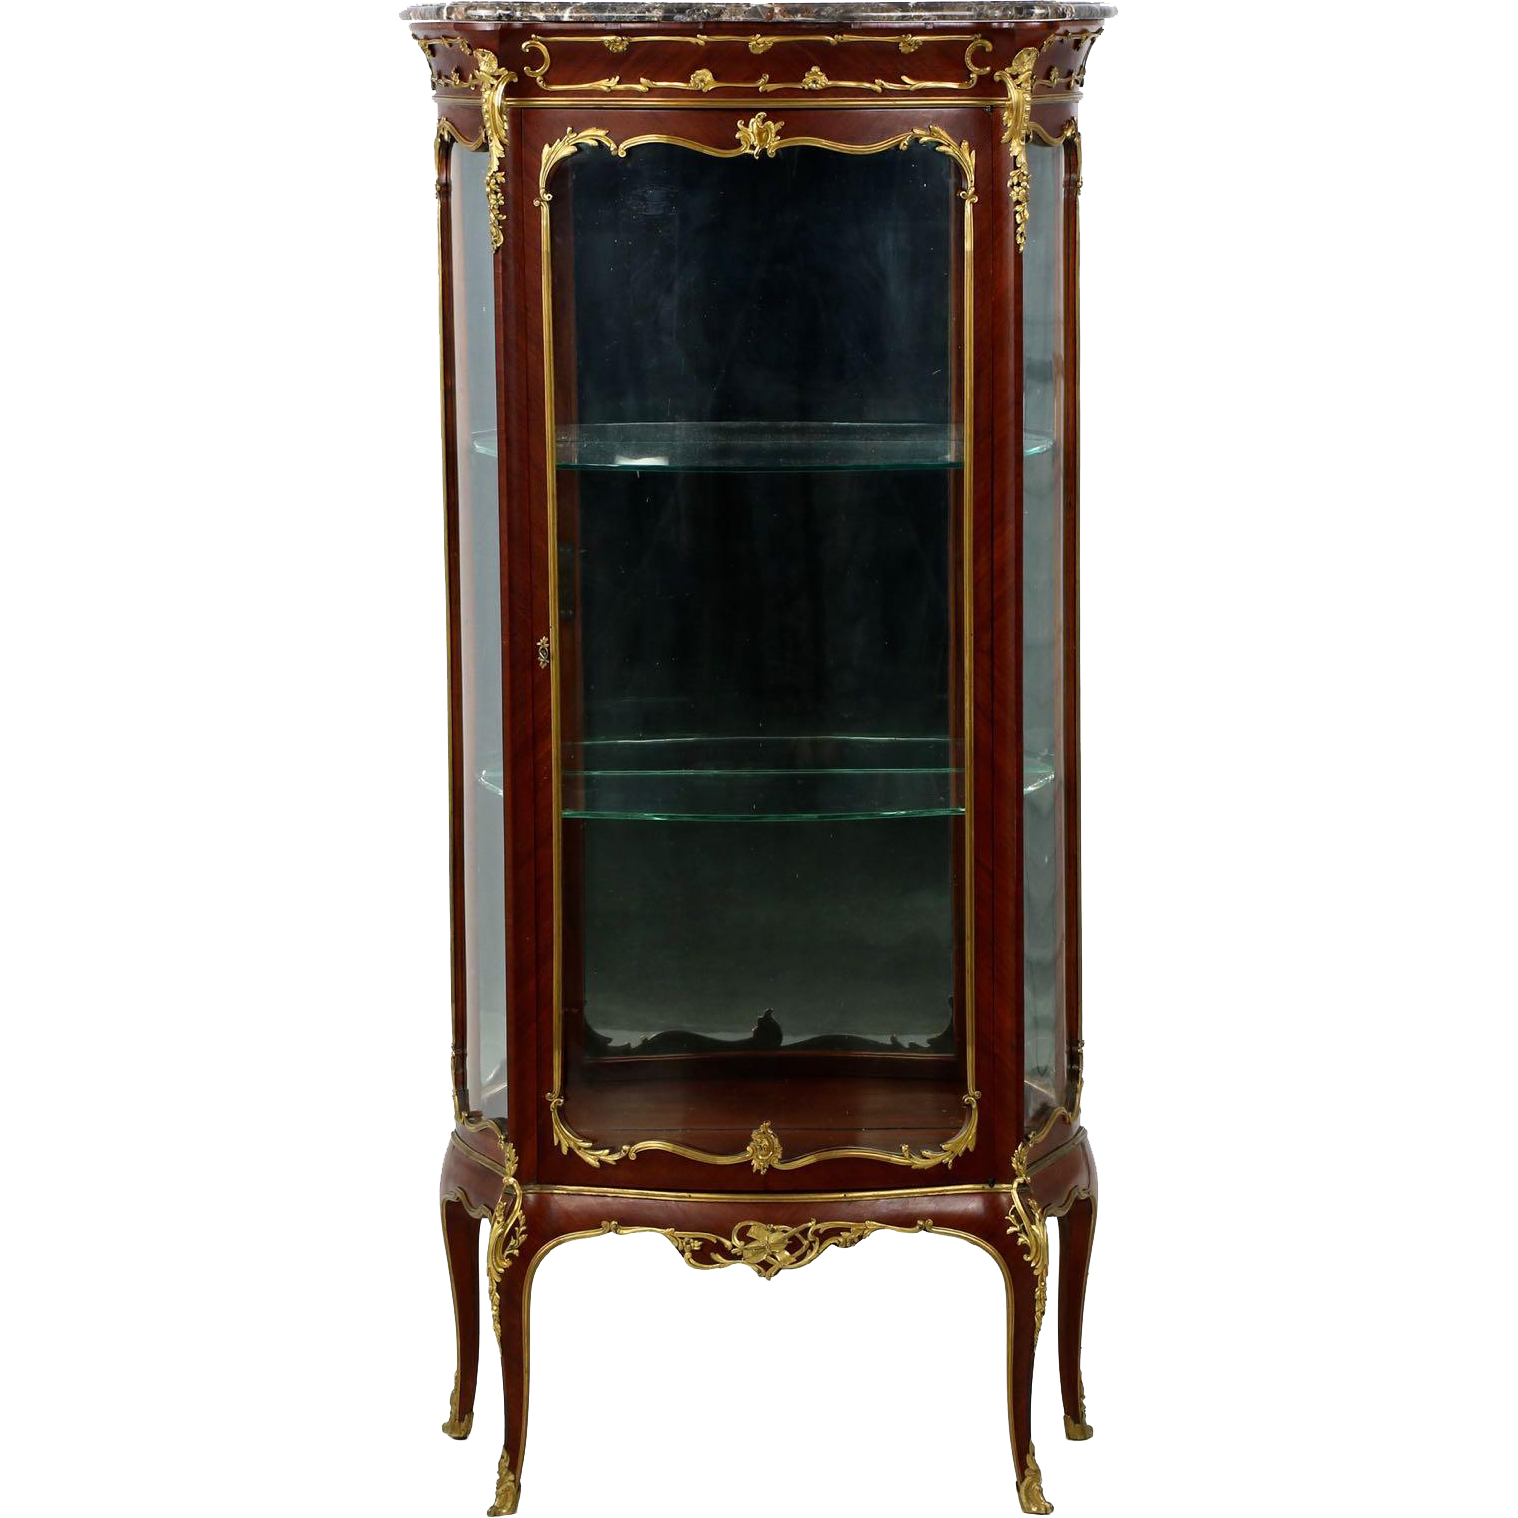 exceptional french louis xv style gilt bronze vitrine display cabinet from sillafineantiques on. Black Bedroom Furniture Sets. Home Design Ideas